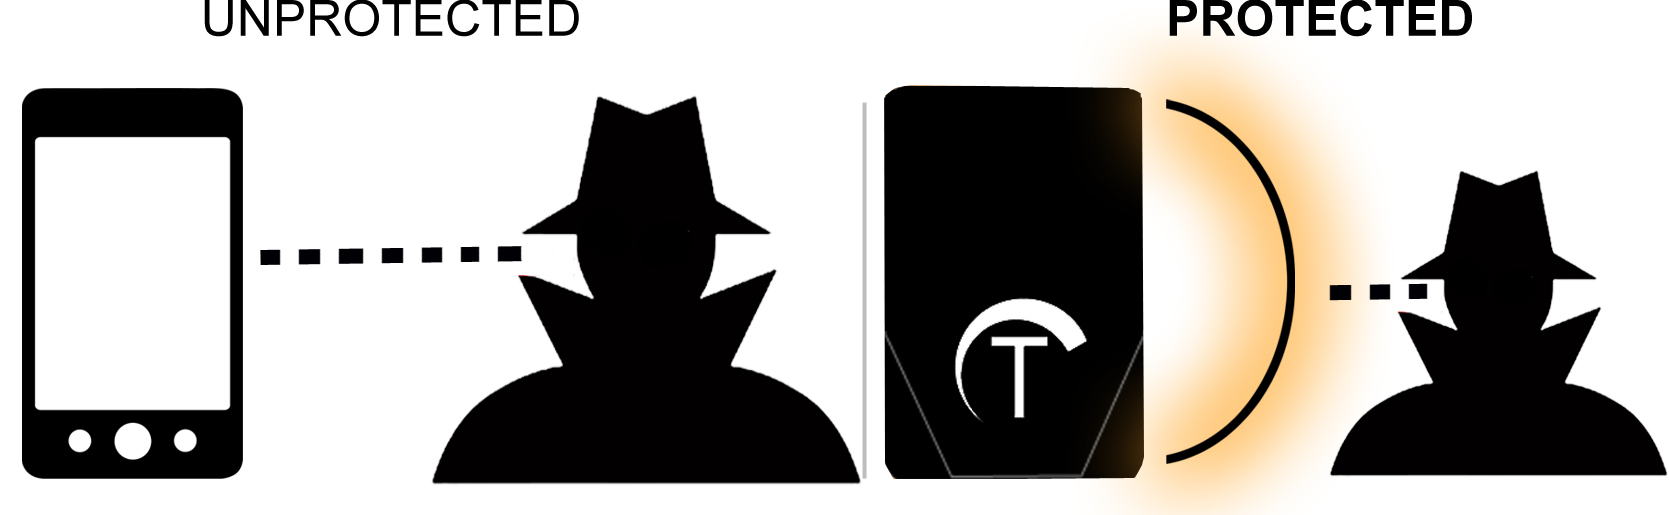 Image via TunnelCase.com, a shielding system that can protect your phone from being spied on.